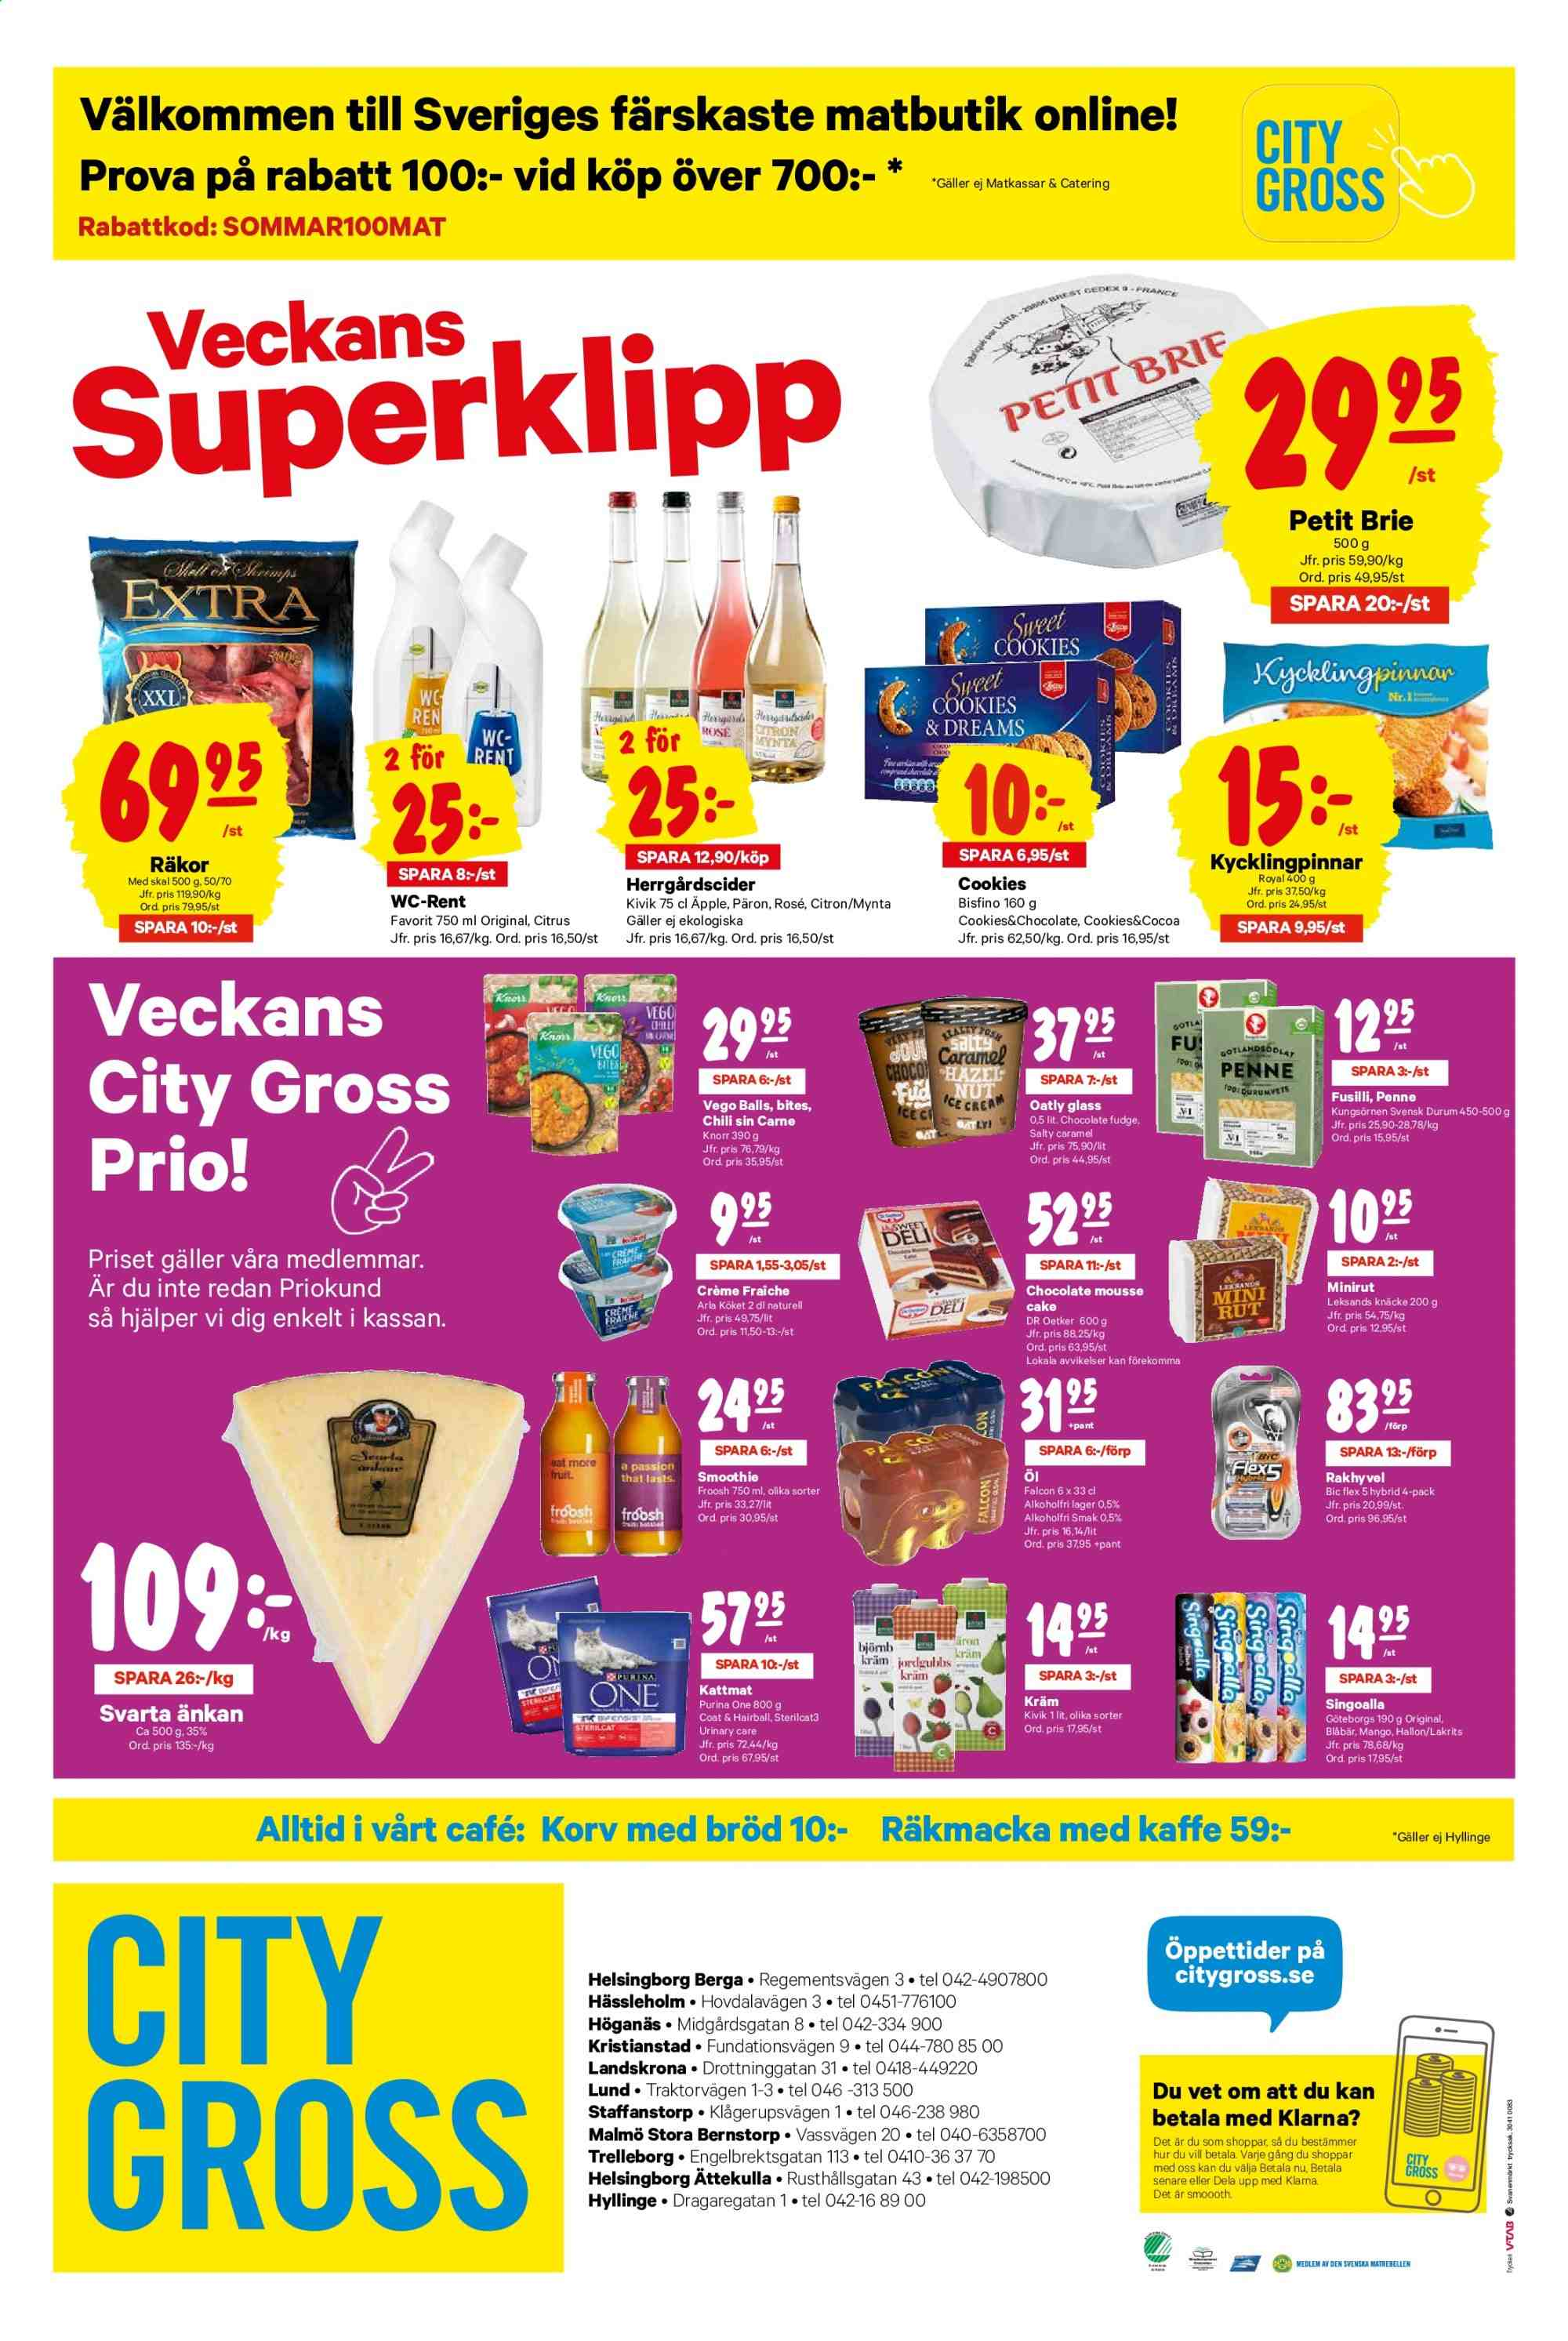 City Gross reklamblad - 24/6 2019 - 30/6 2019. Sida 12.